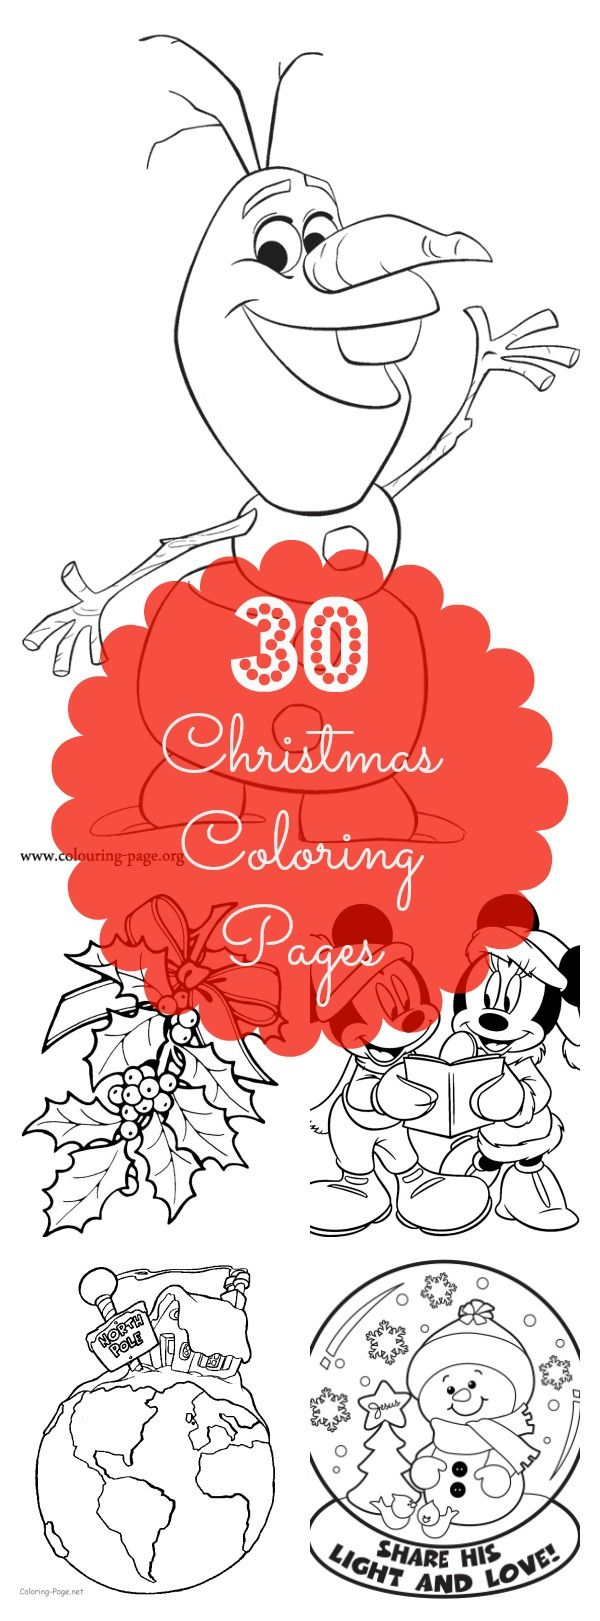 92 best To Do Sheets images on Pinterest | For kids, Adult coloring ...